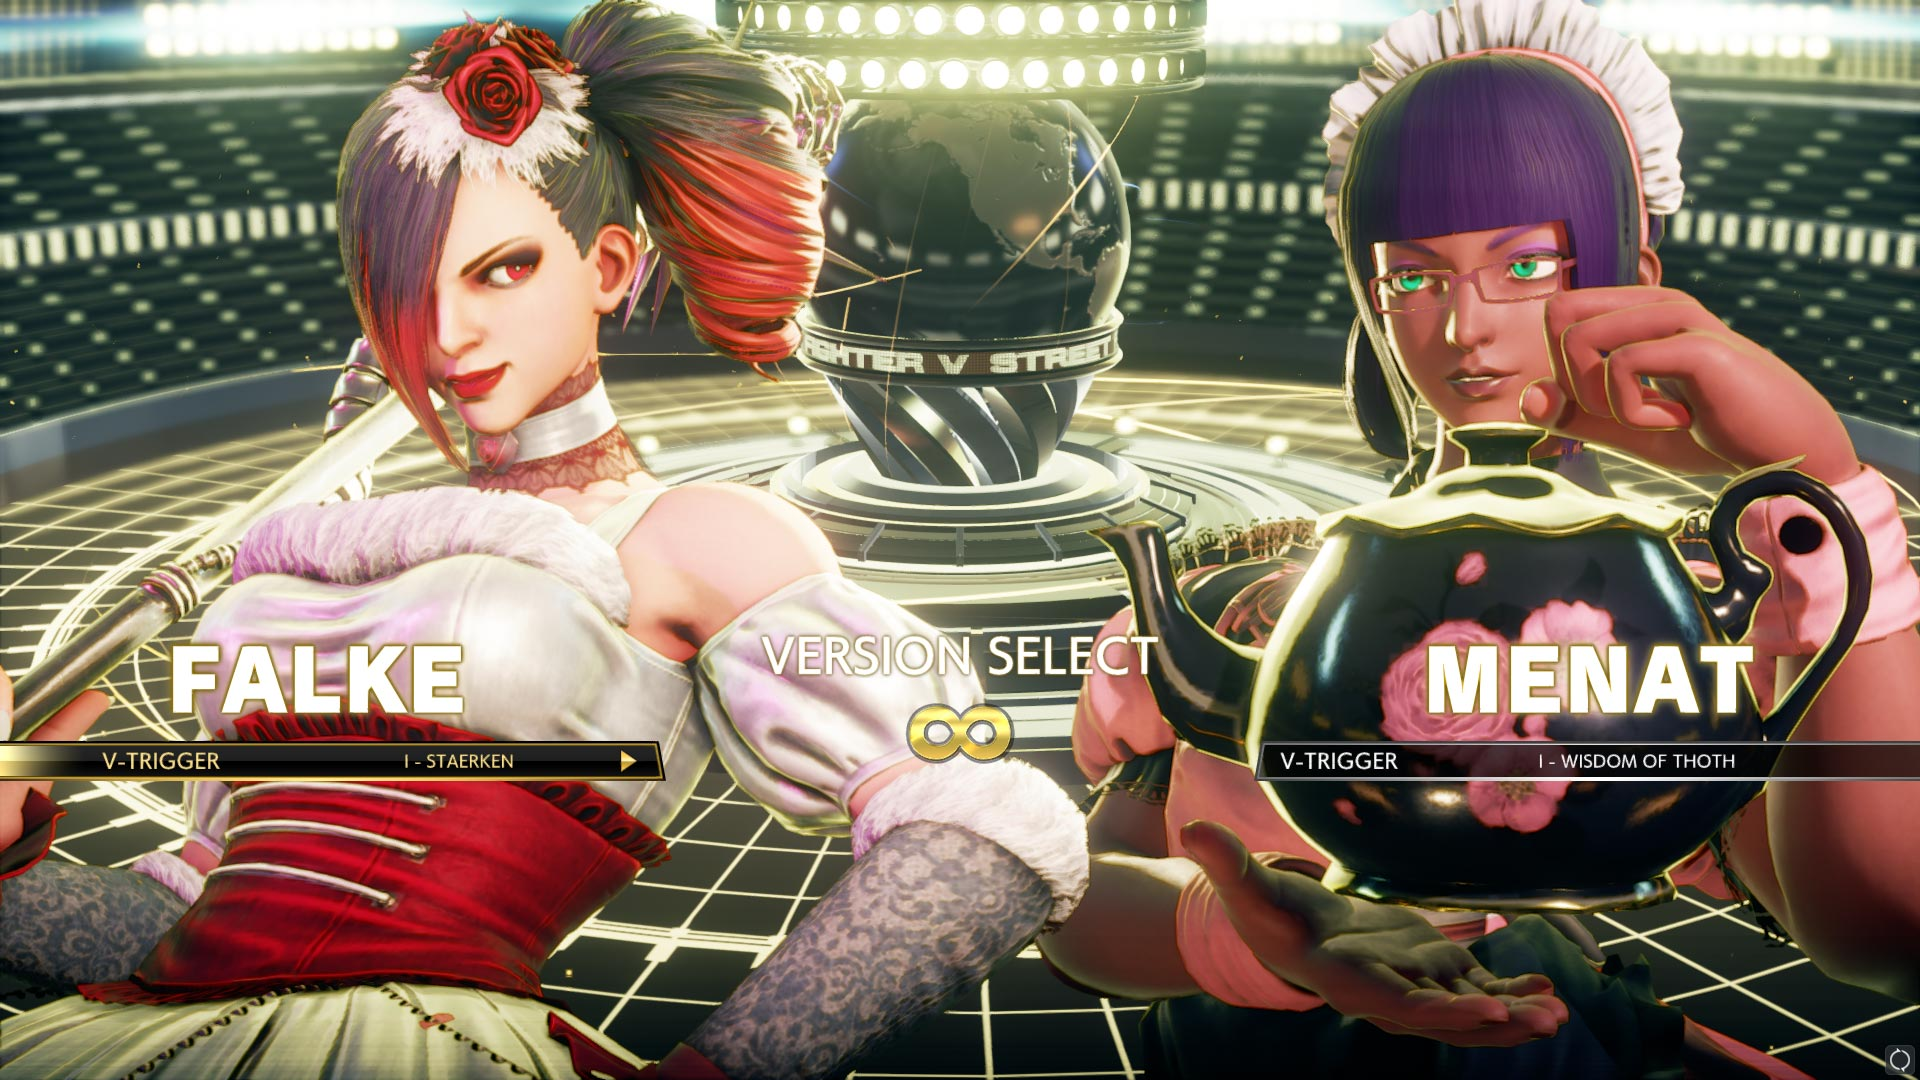 Professional costume colors for Street Fighter 5 21 out of 21 image gallery